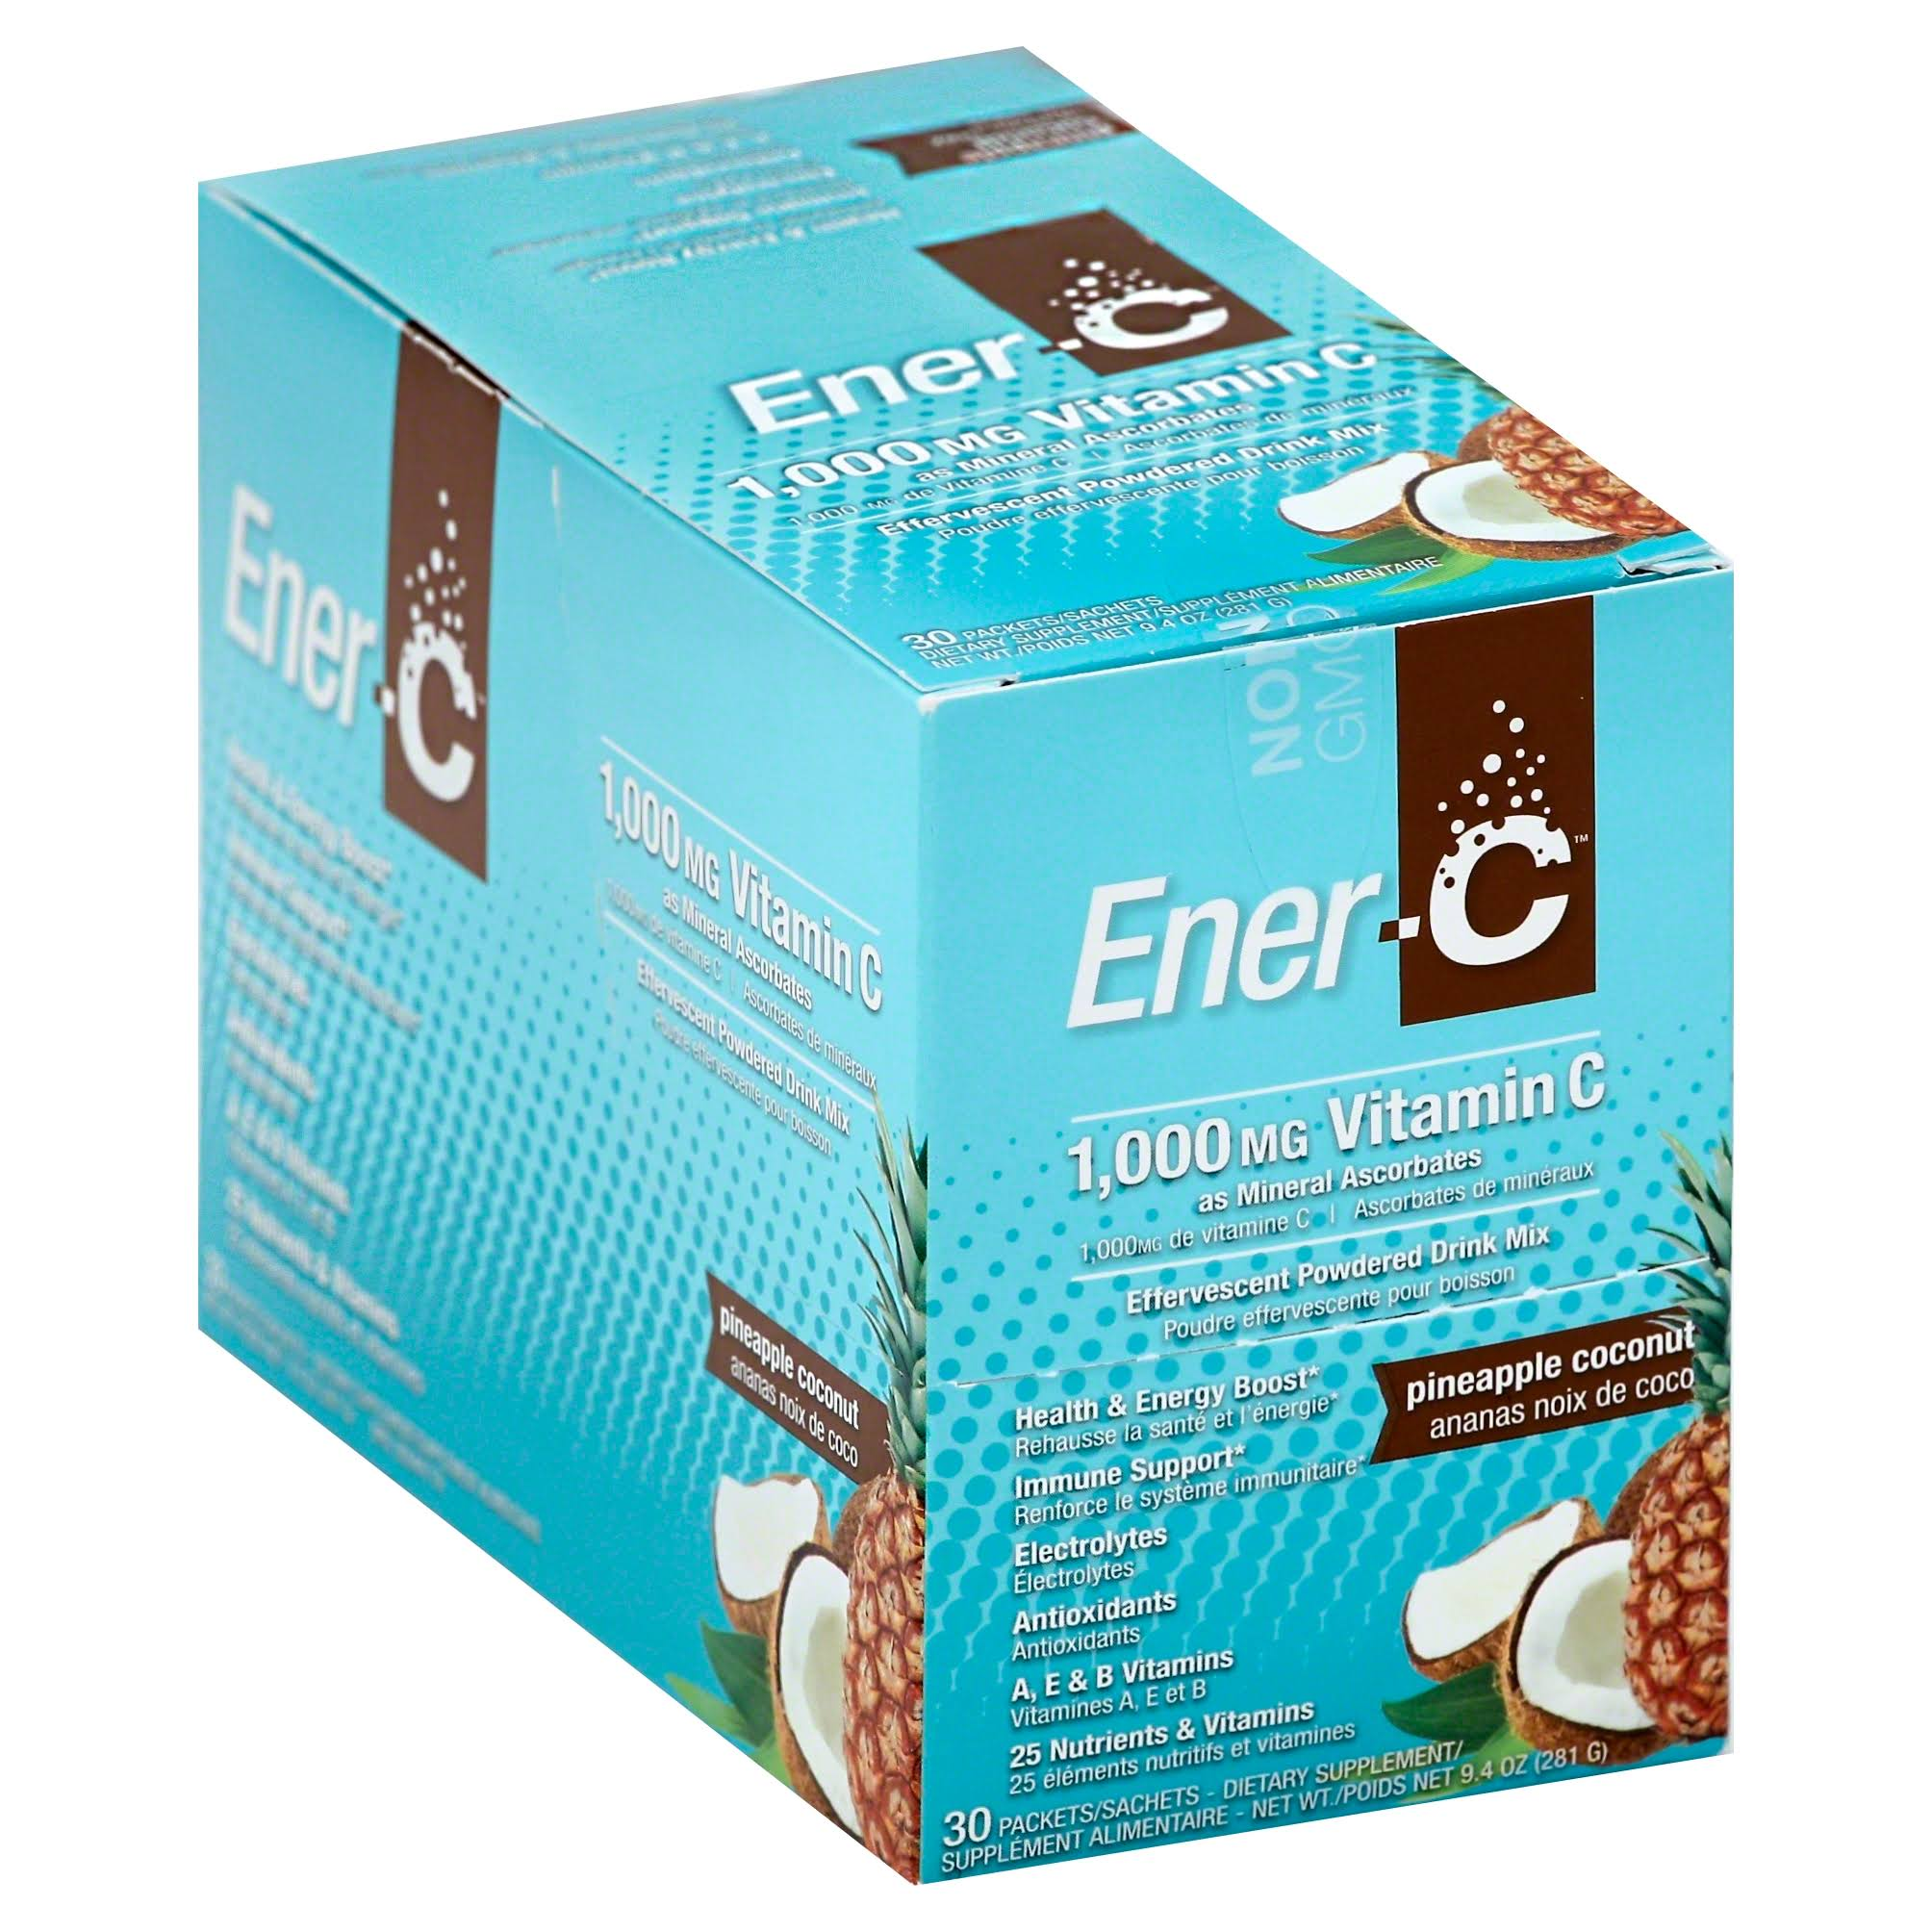 Ener-C Vitamin C Effervescent Drink Mix - Pineapple Coconut, 1000mg